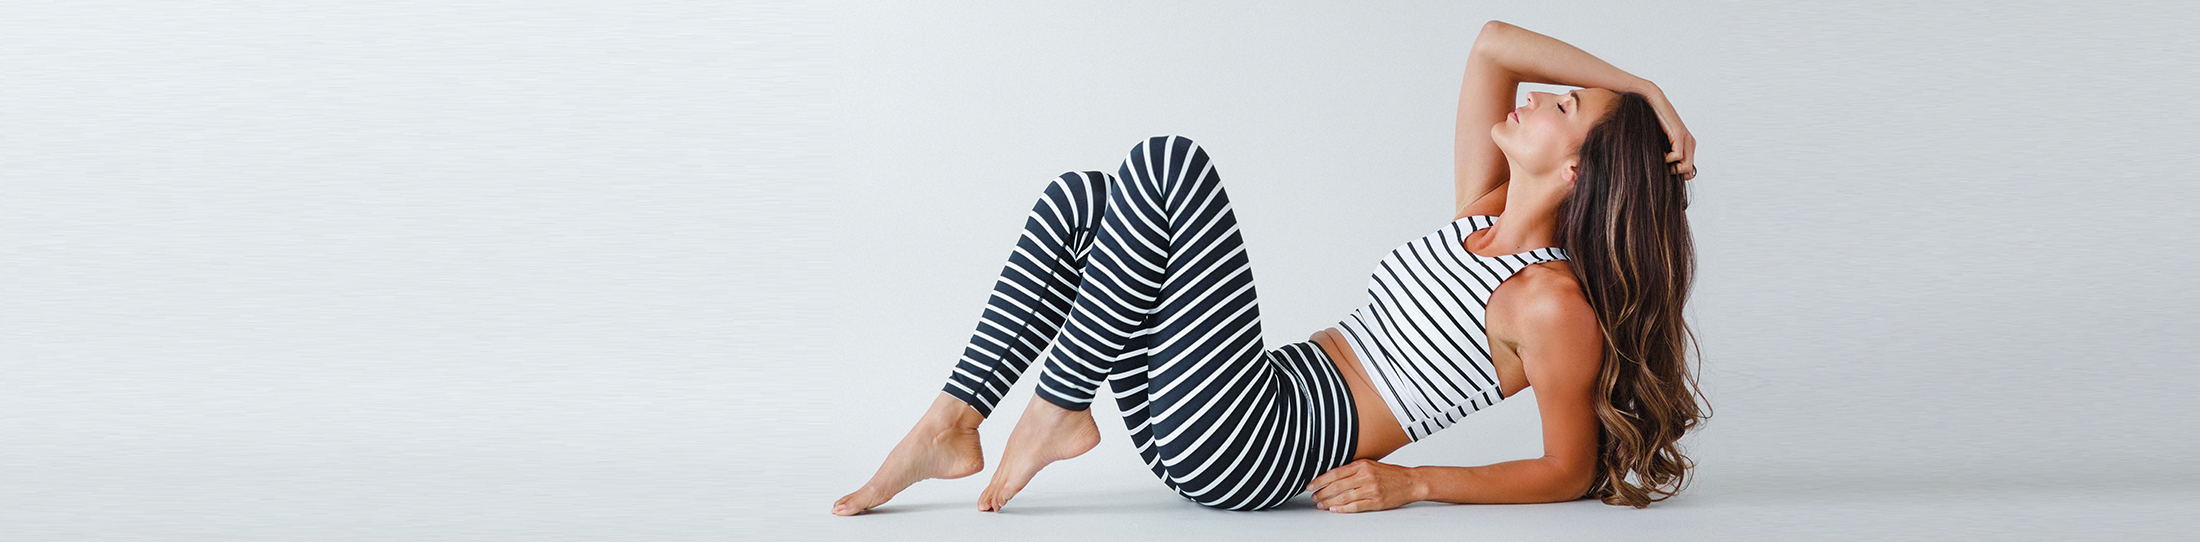 product-category-banner-striped-yoga-apparel.jpg